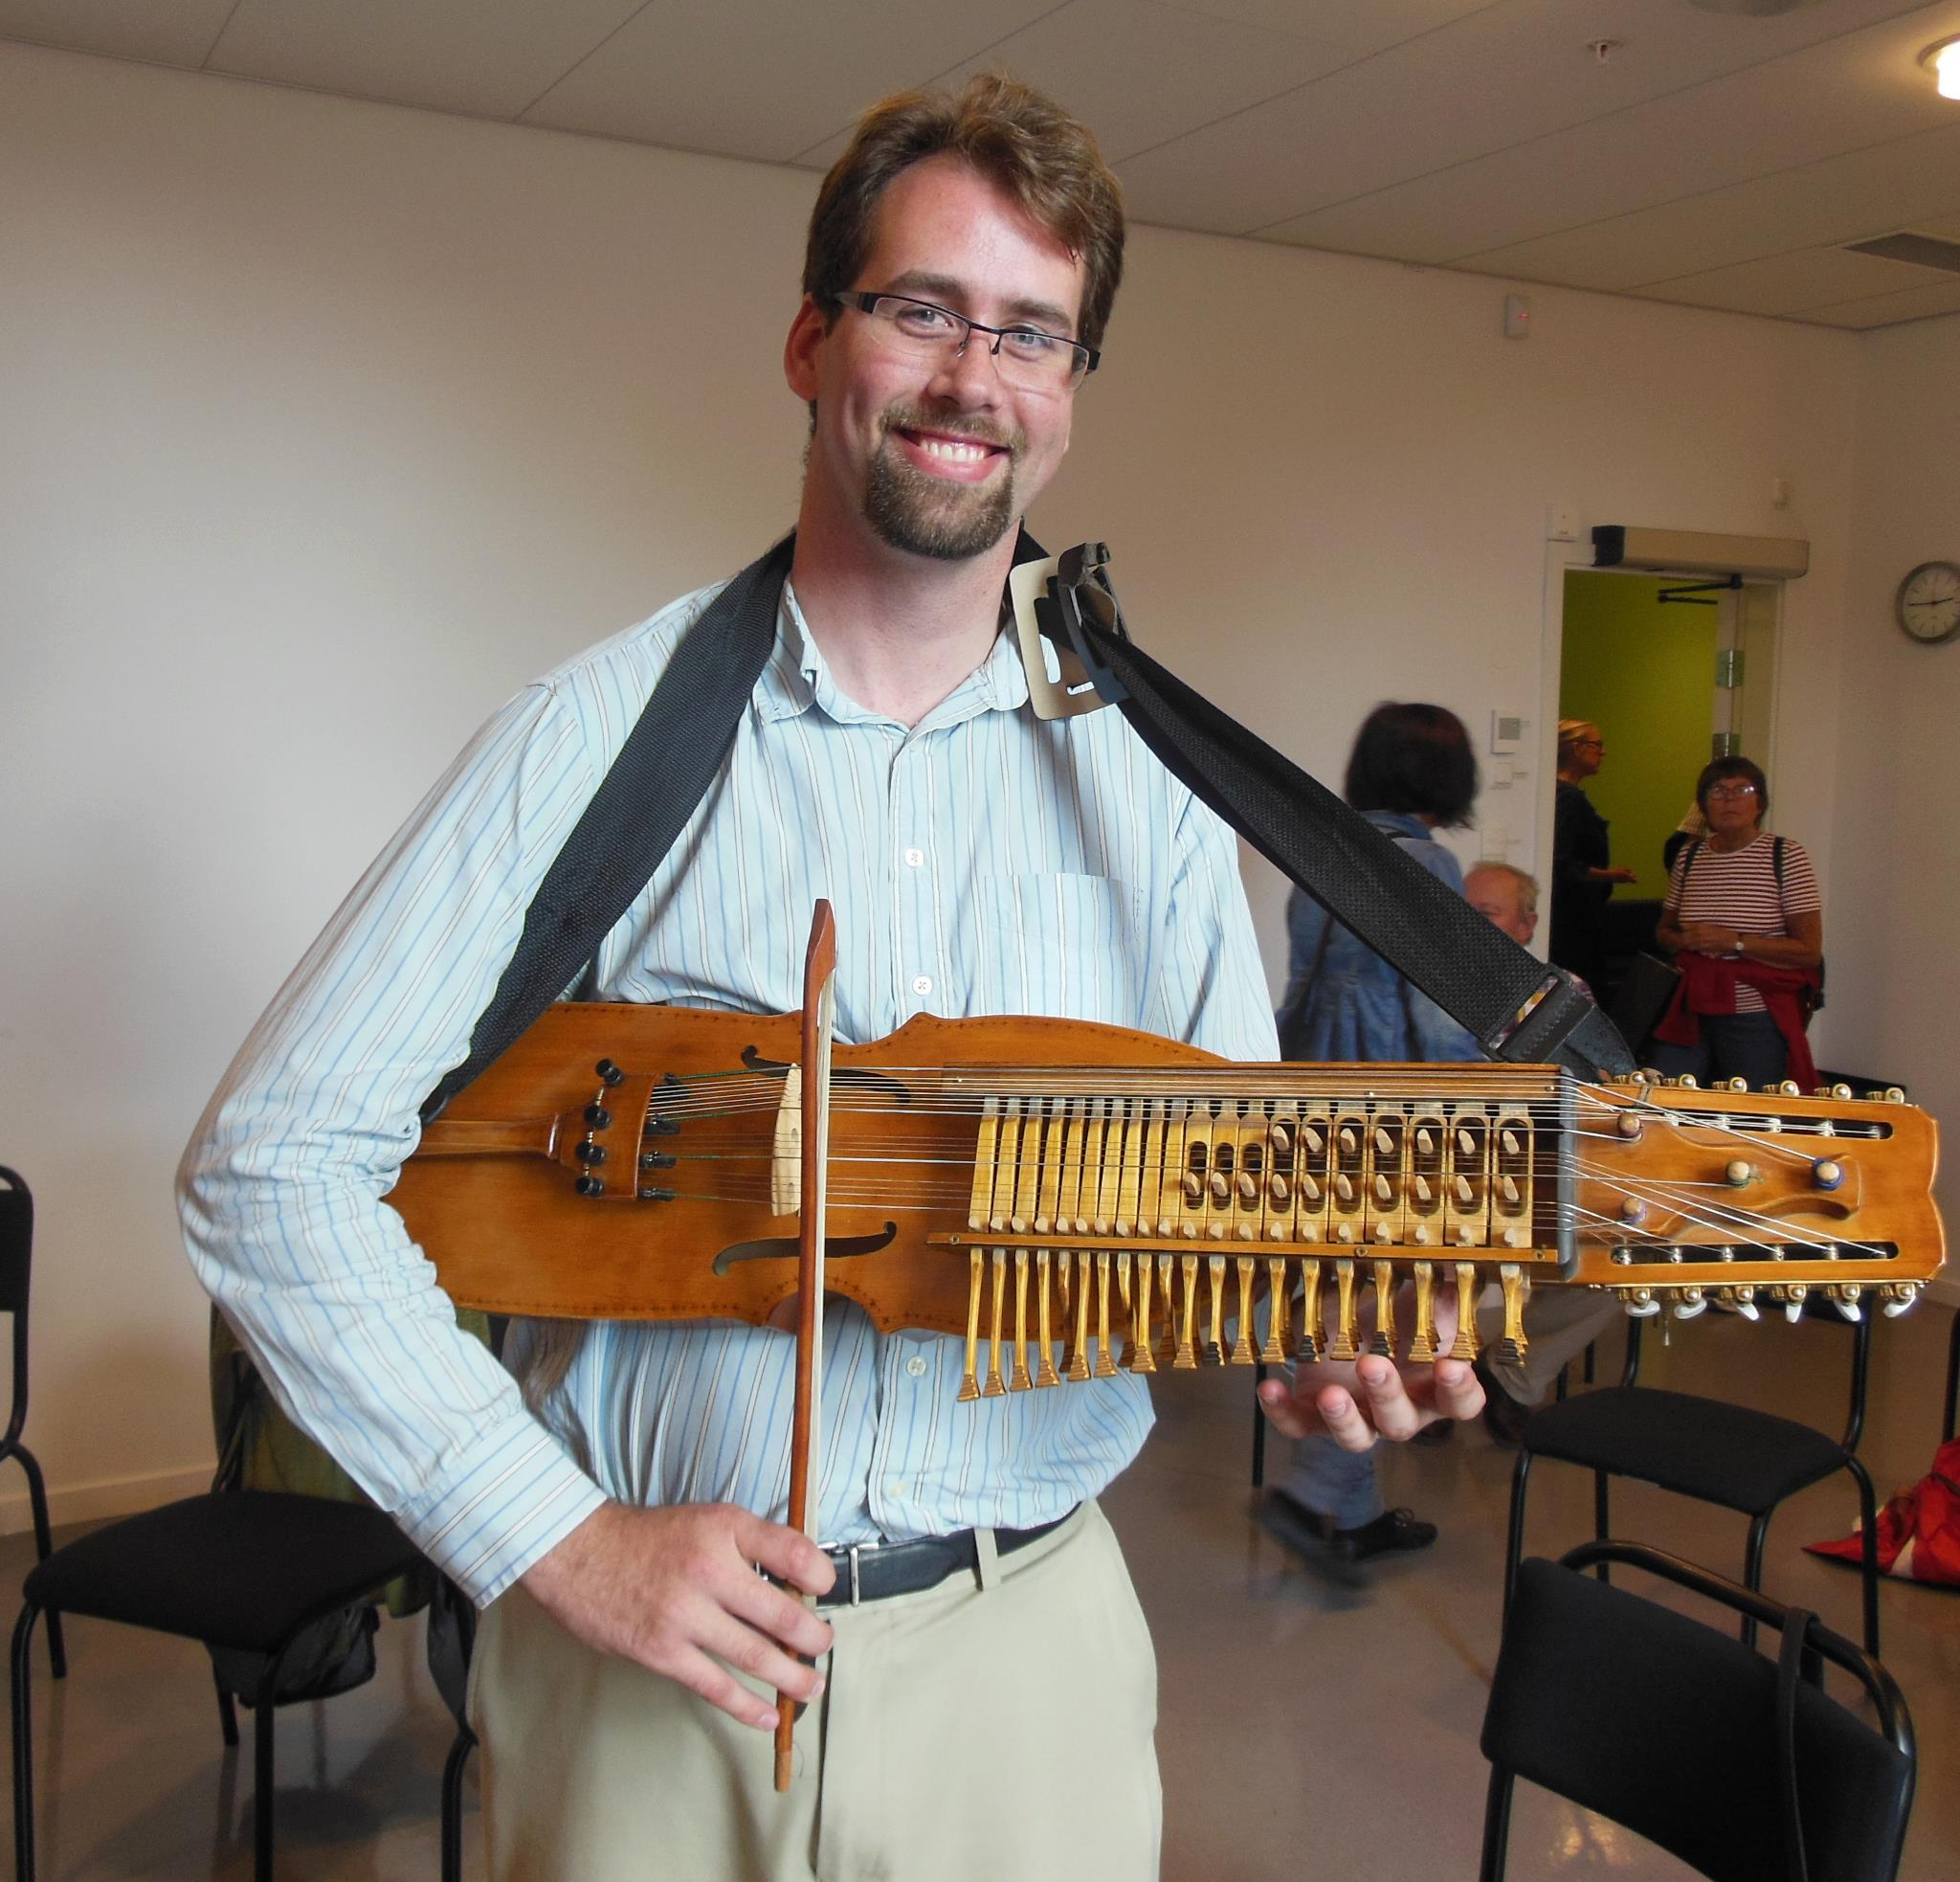 Jesse McQuarters at the Eric Sahlström 100th birthday celebration & nyckelharpa festival (Tobo, Sweden)